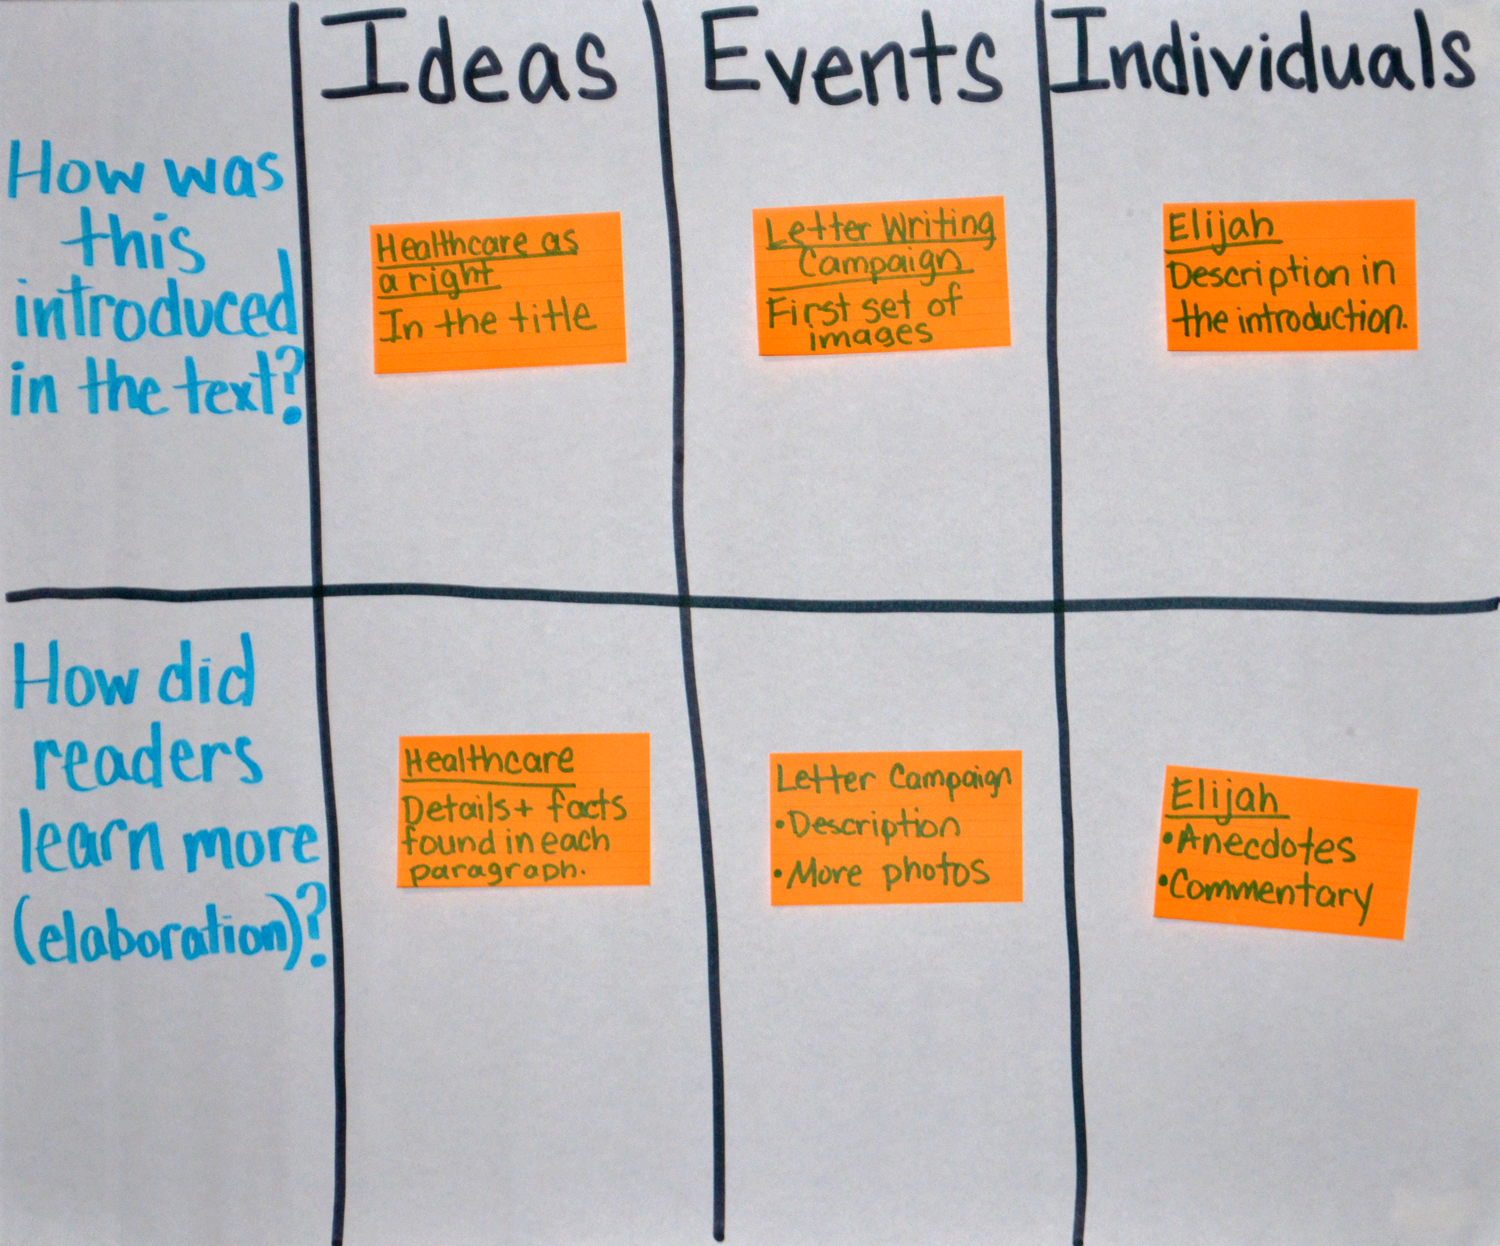 Teaching Ideas, Events, and Individuals (Standard 3) | On the Web ...